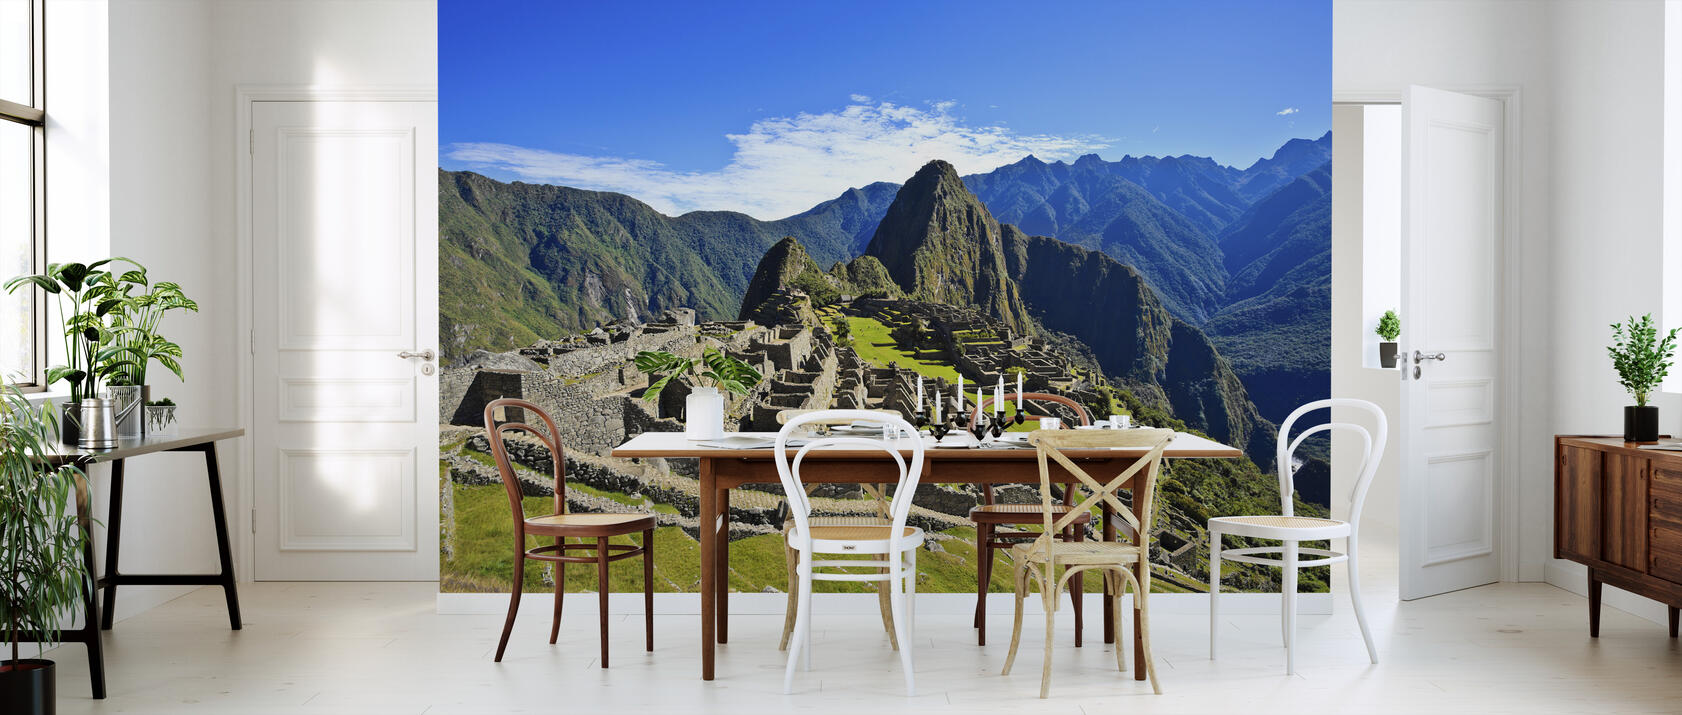 machu picchu fototapete nach ma photowall. Black Bedroom Furniture Sets. Home Design Ideas